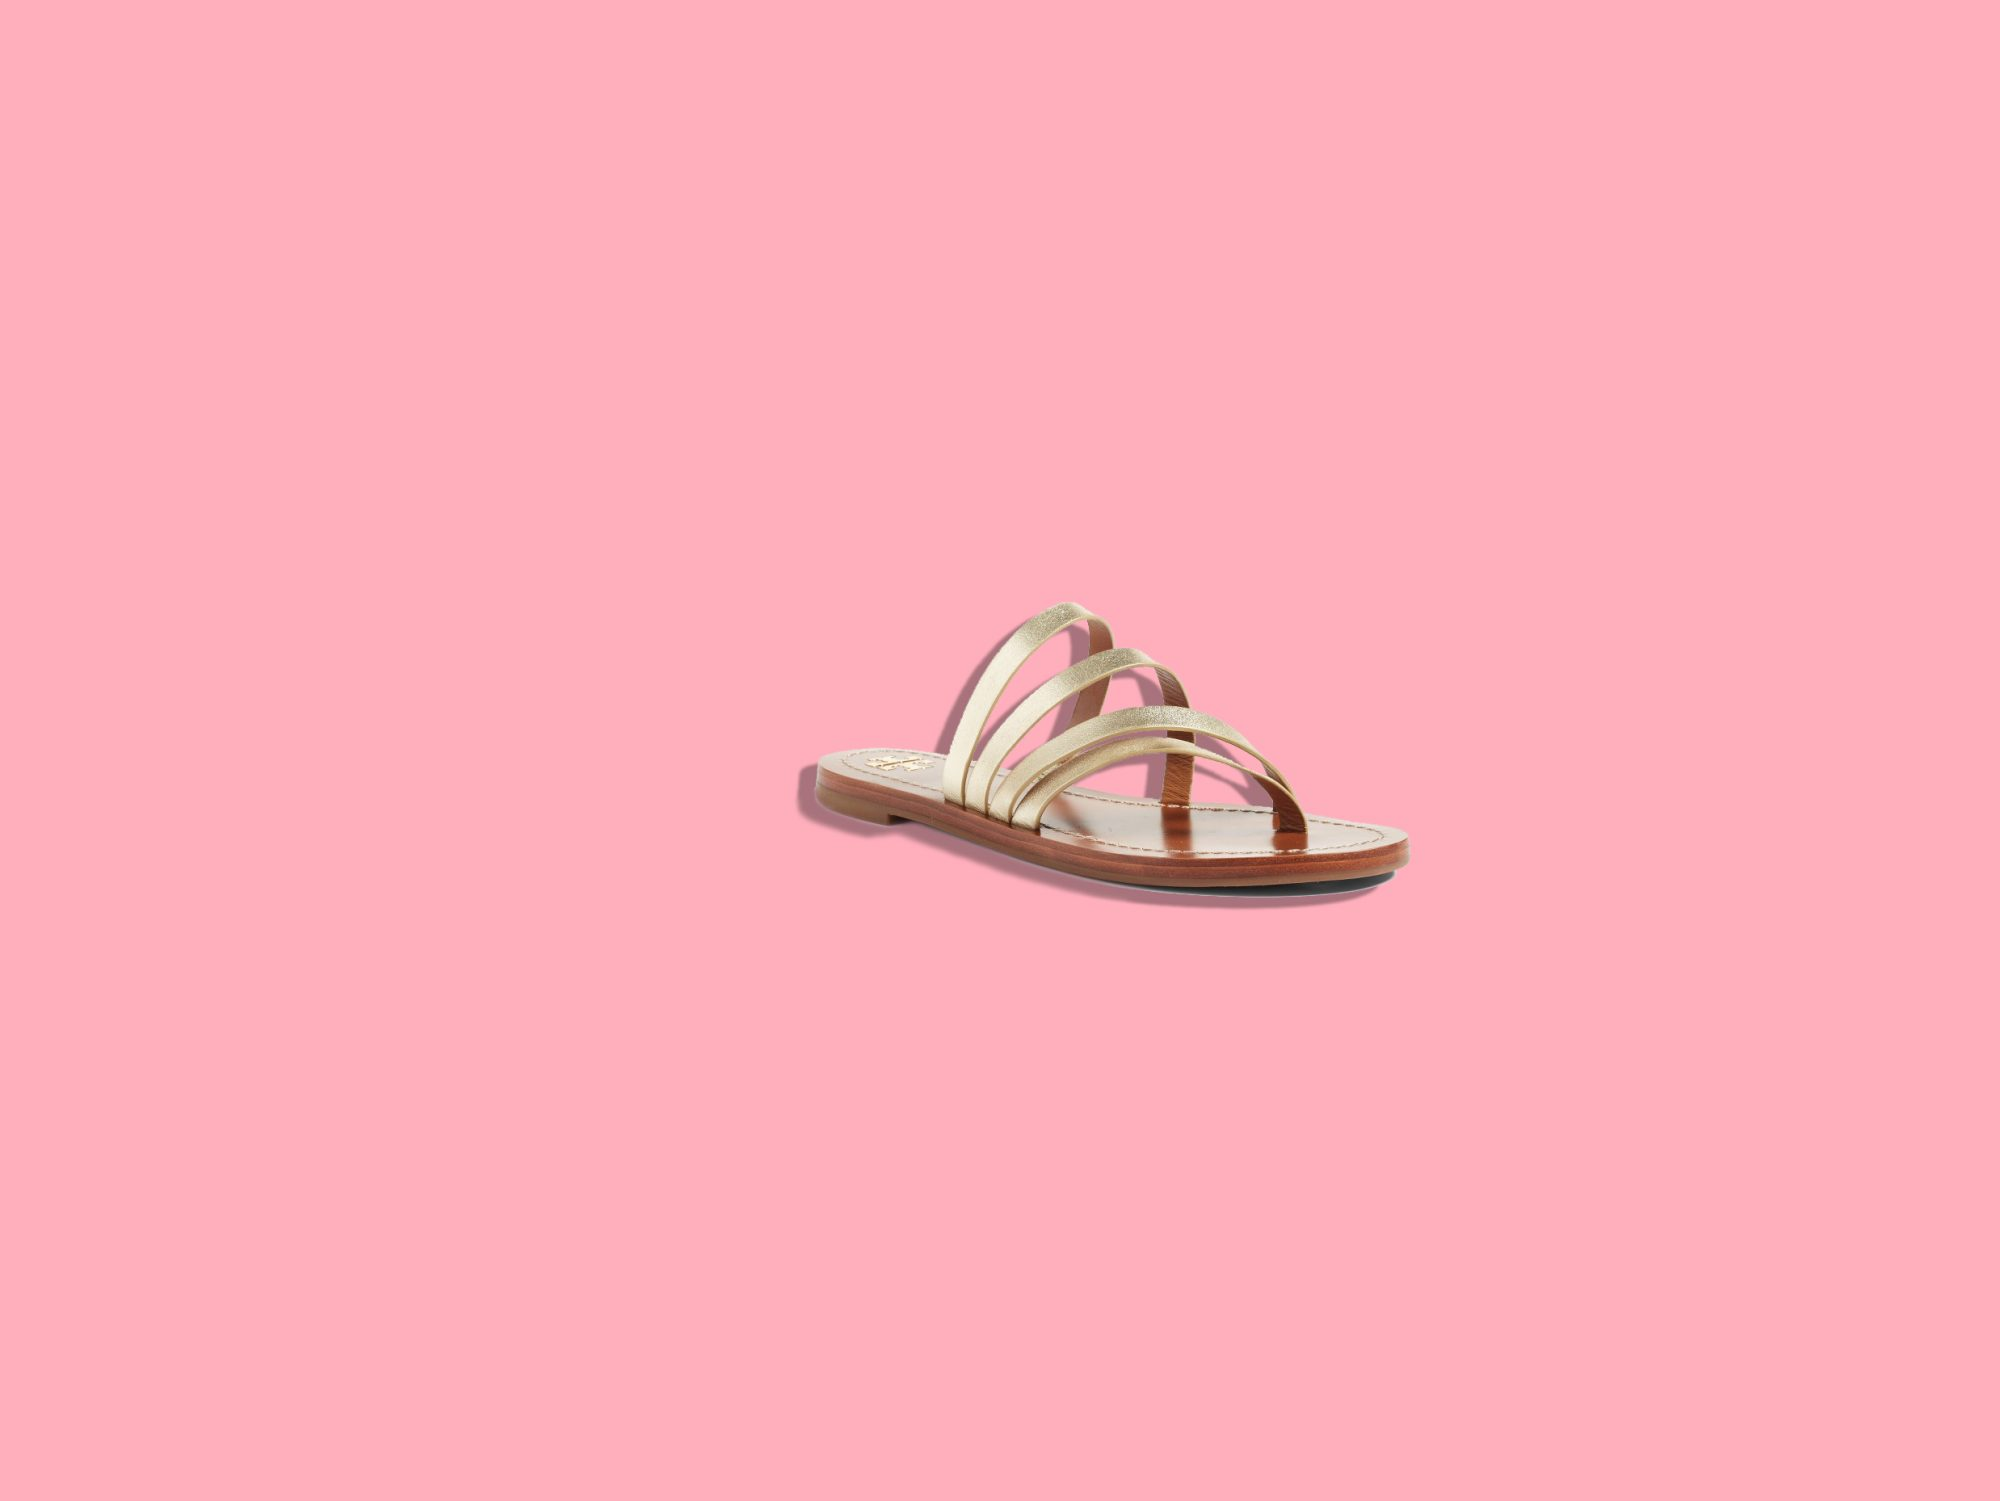 tory-burch-patos-sandal